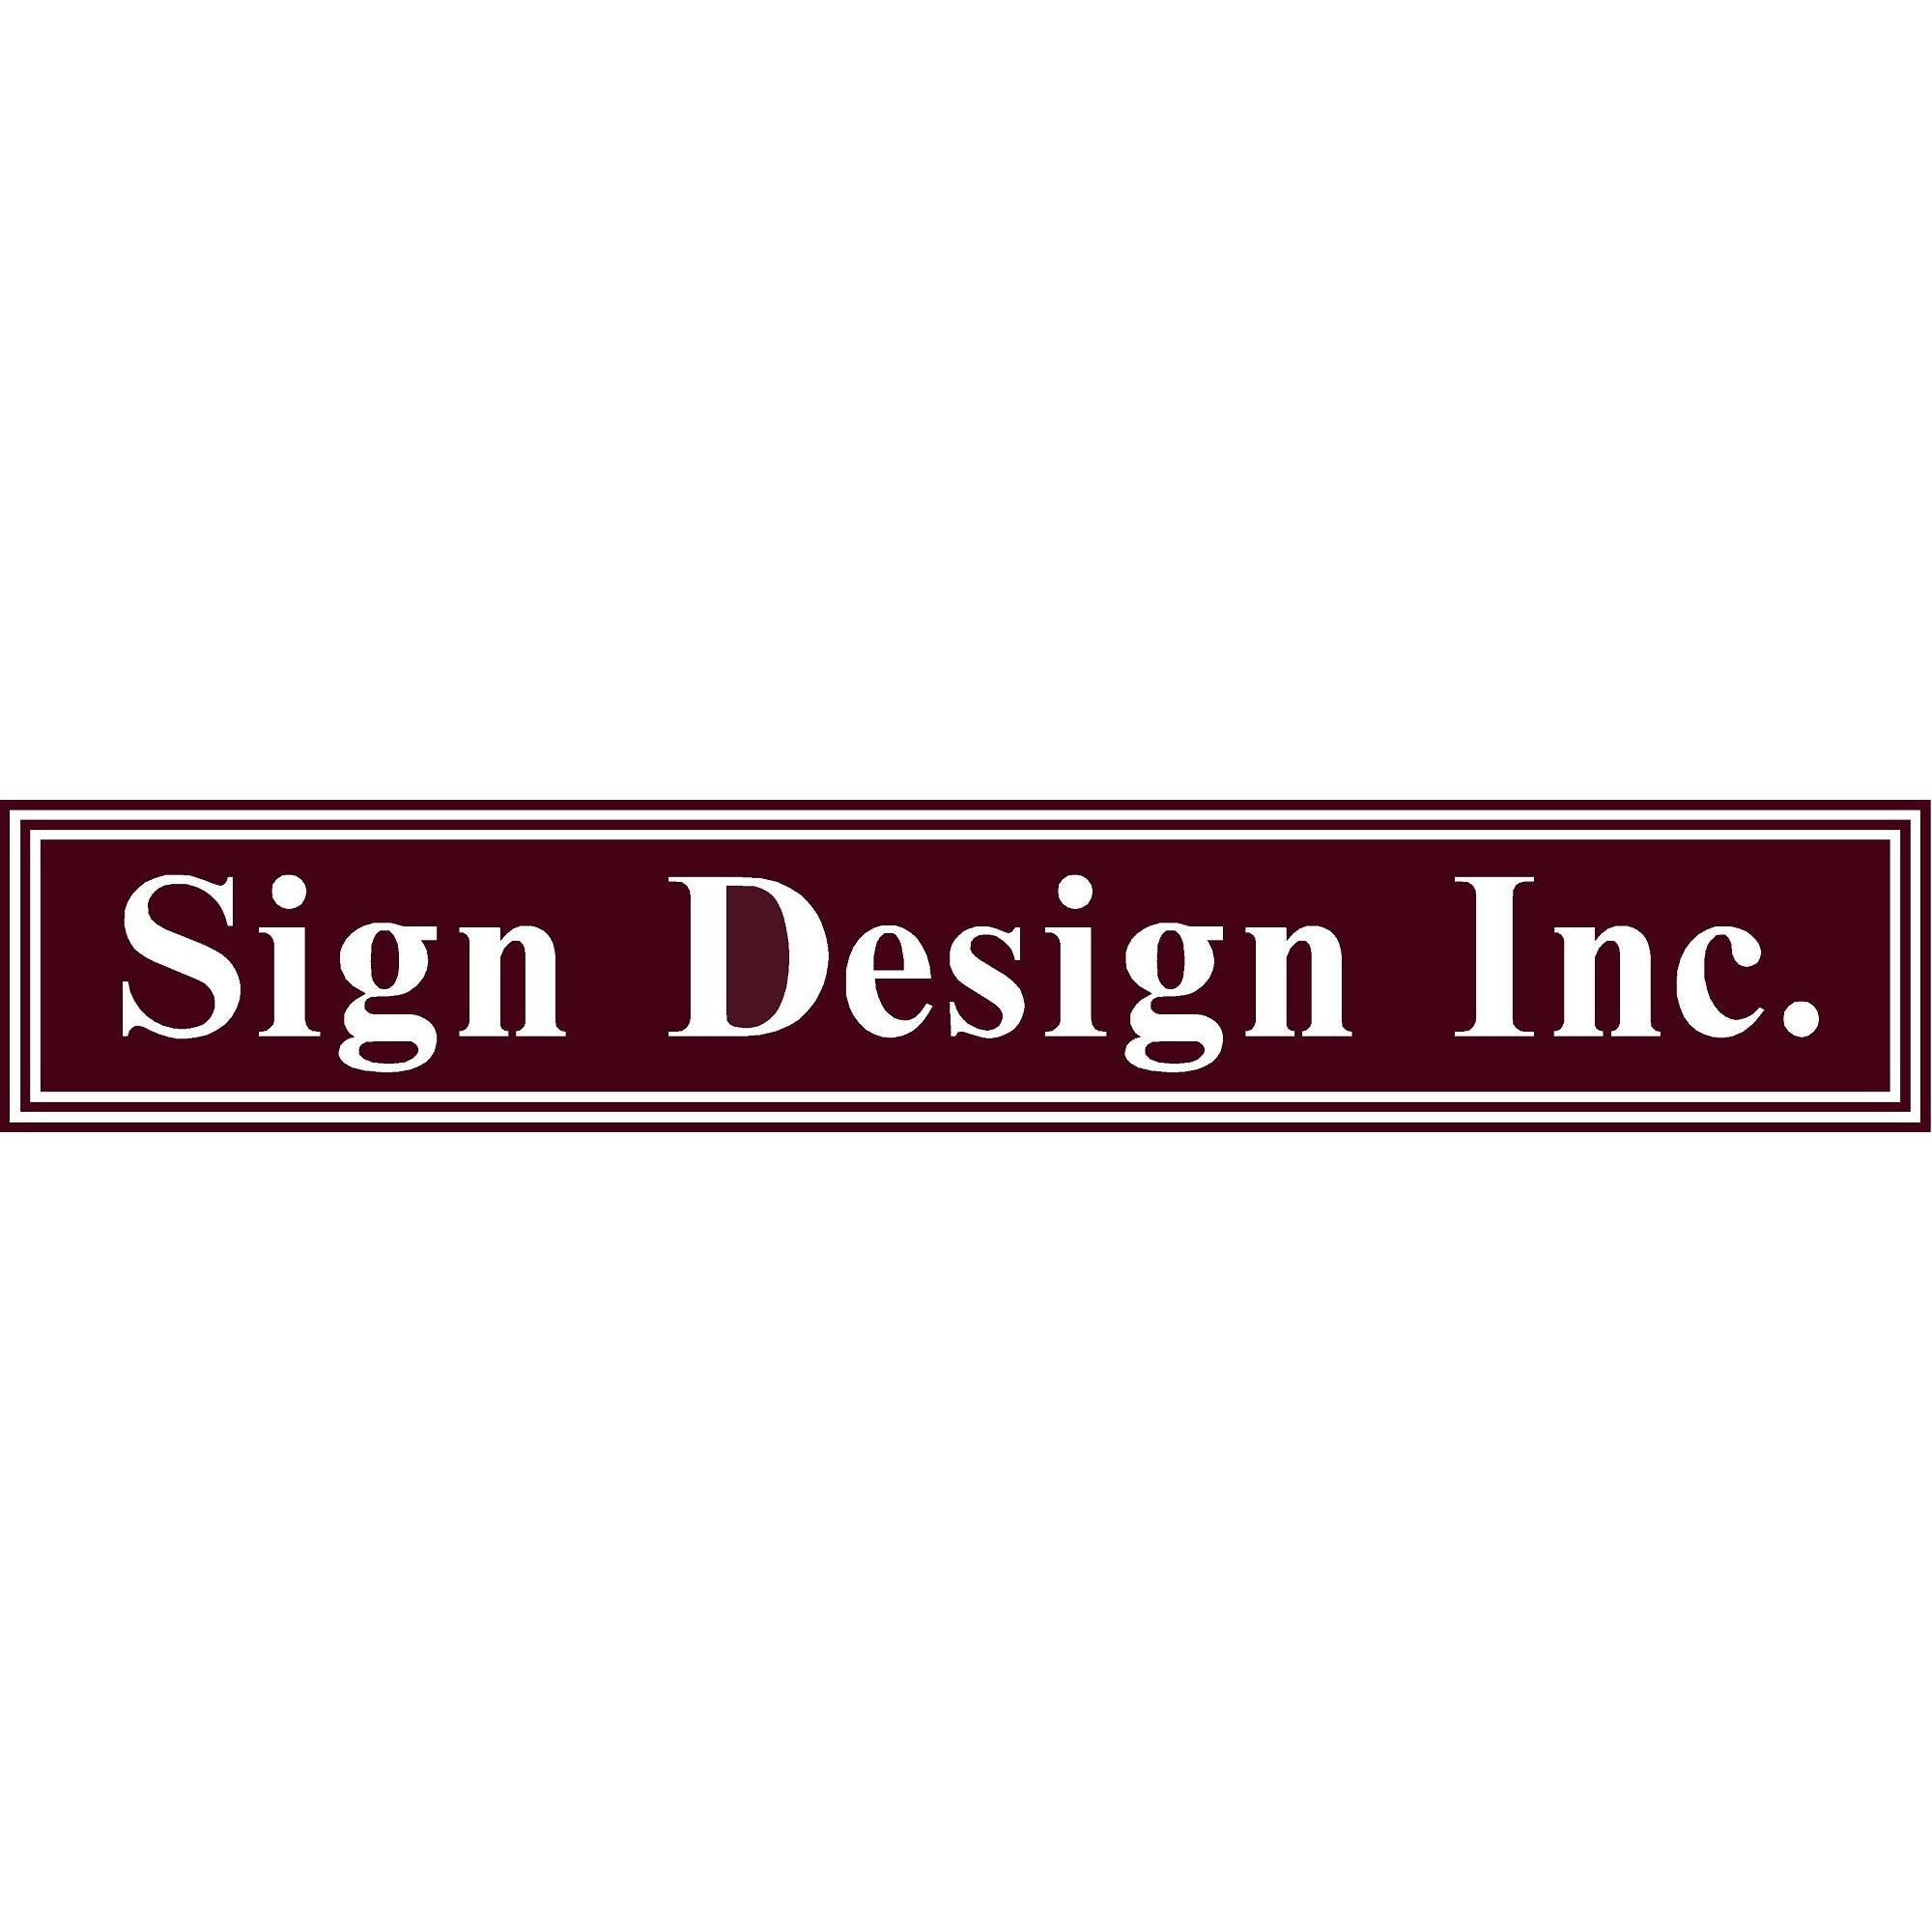 Sign Design Inc.